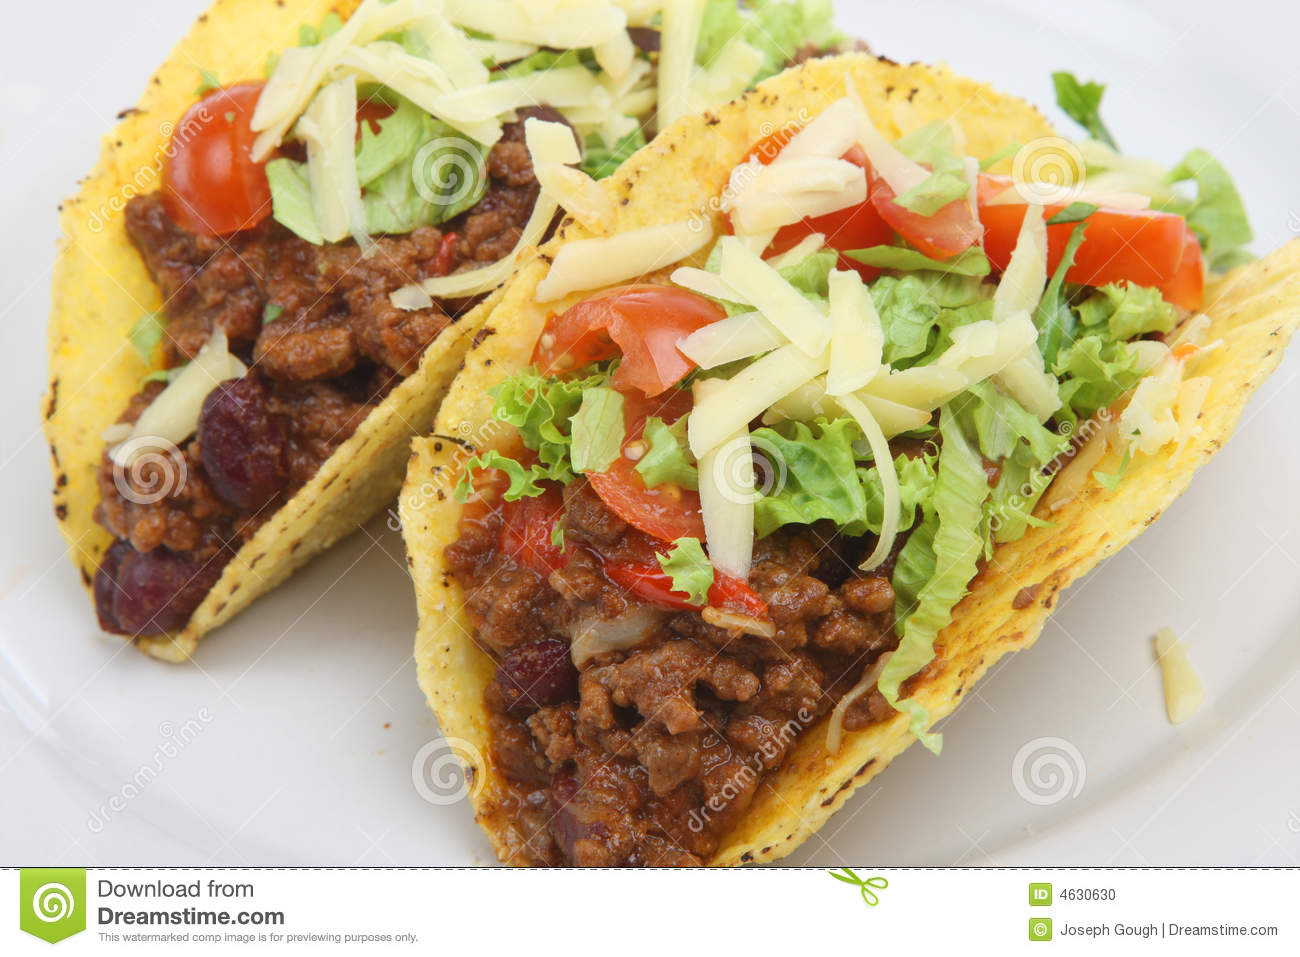 ... shells filled with spicy chilli beef, tomatoes, lettuce and cheese